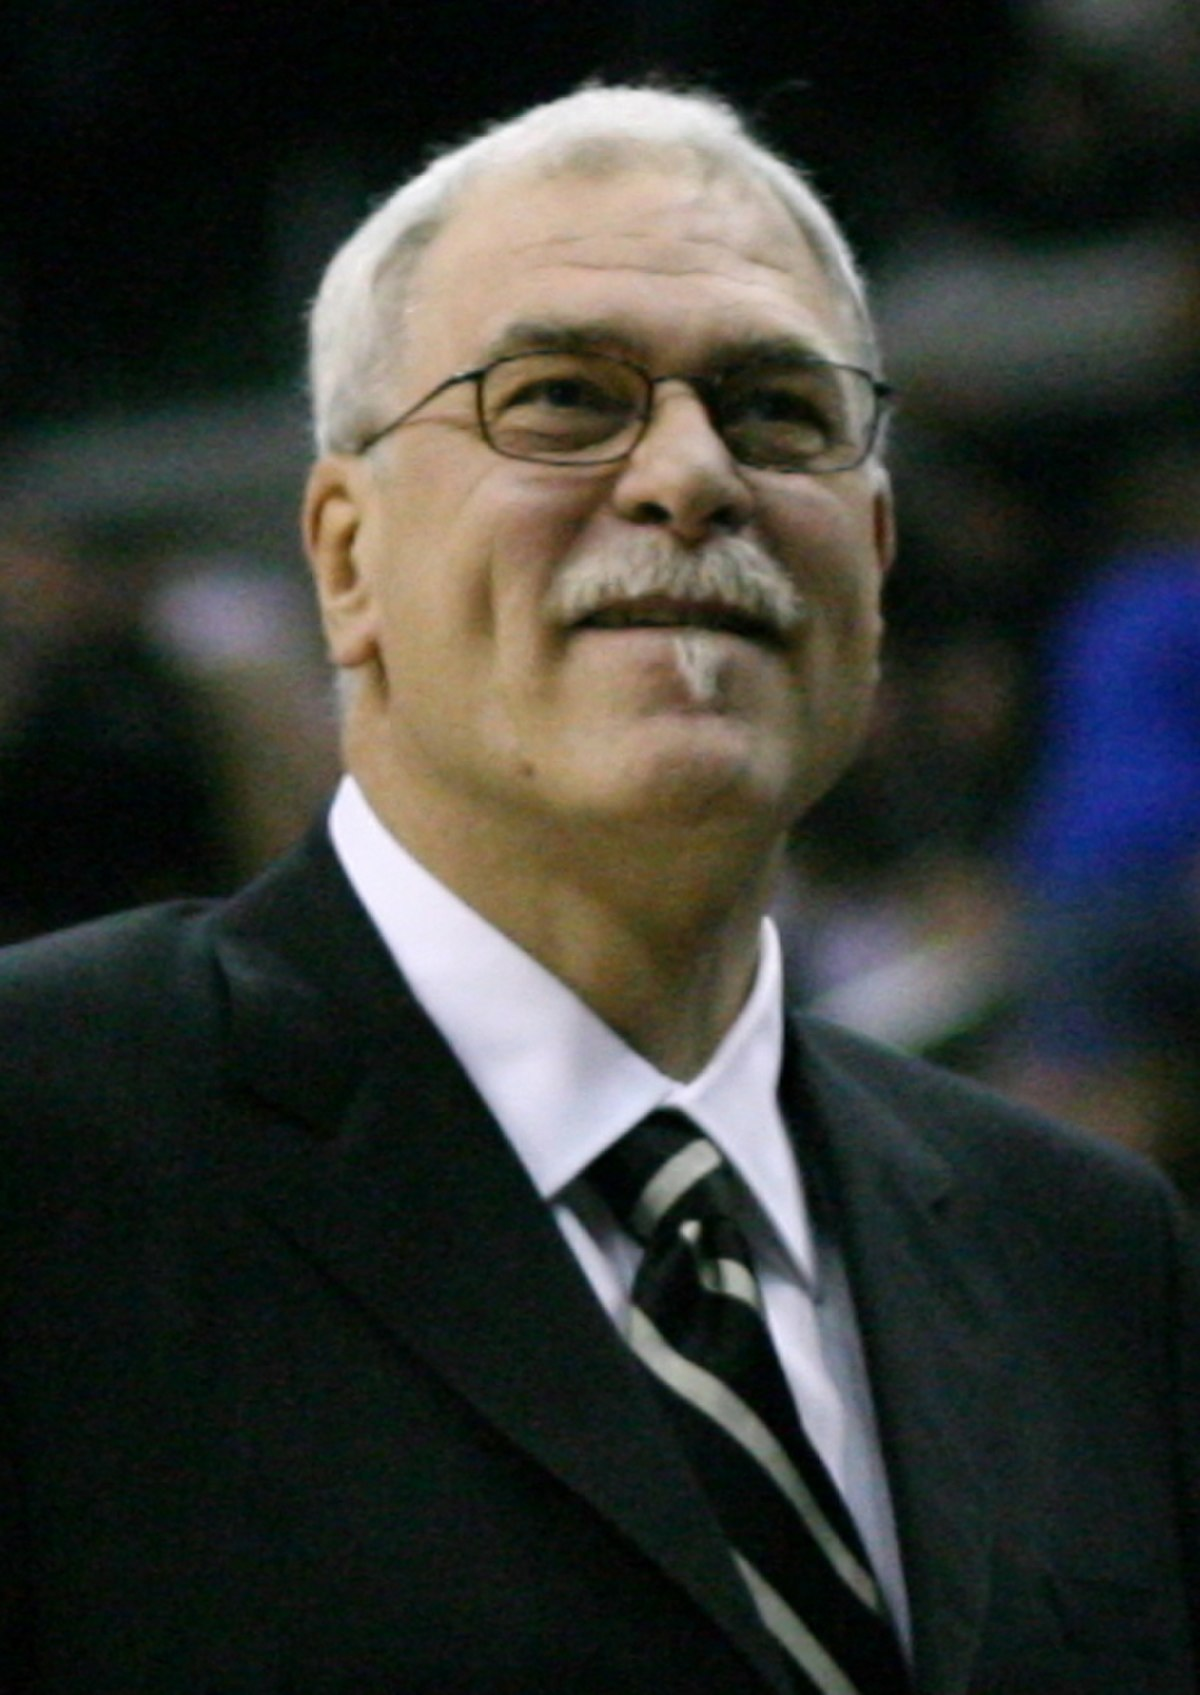 Phil jackson ny knicks coach sexual harassment